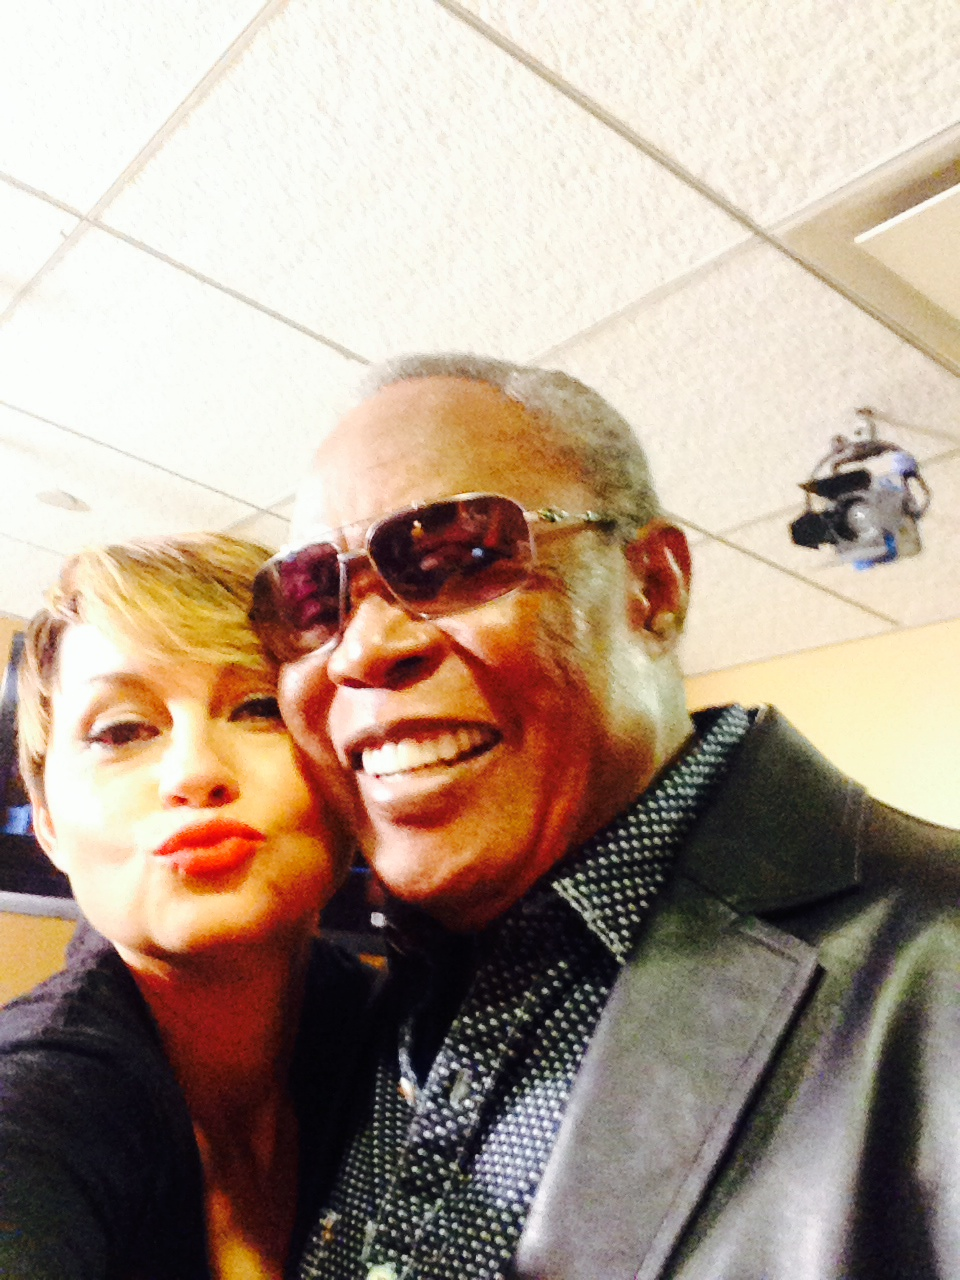 Me and Sam Moore backstage at Fox and Friends